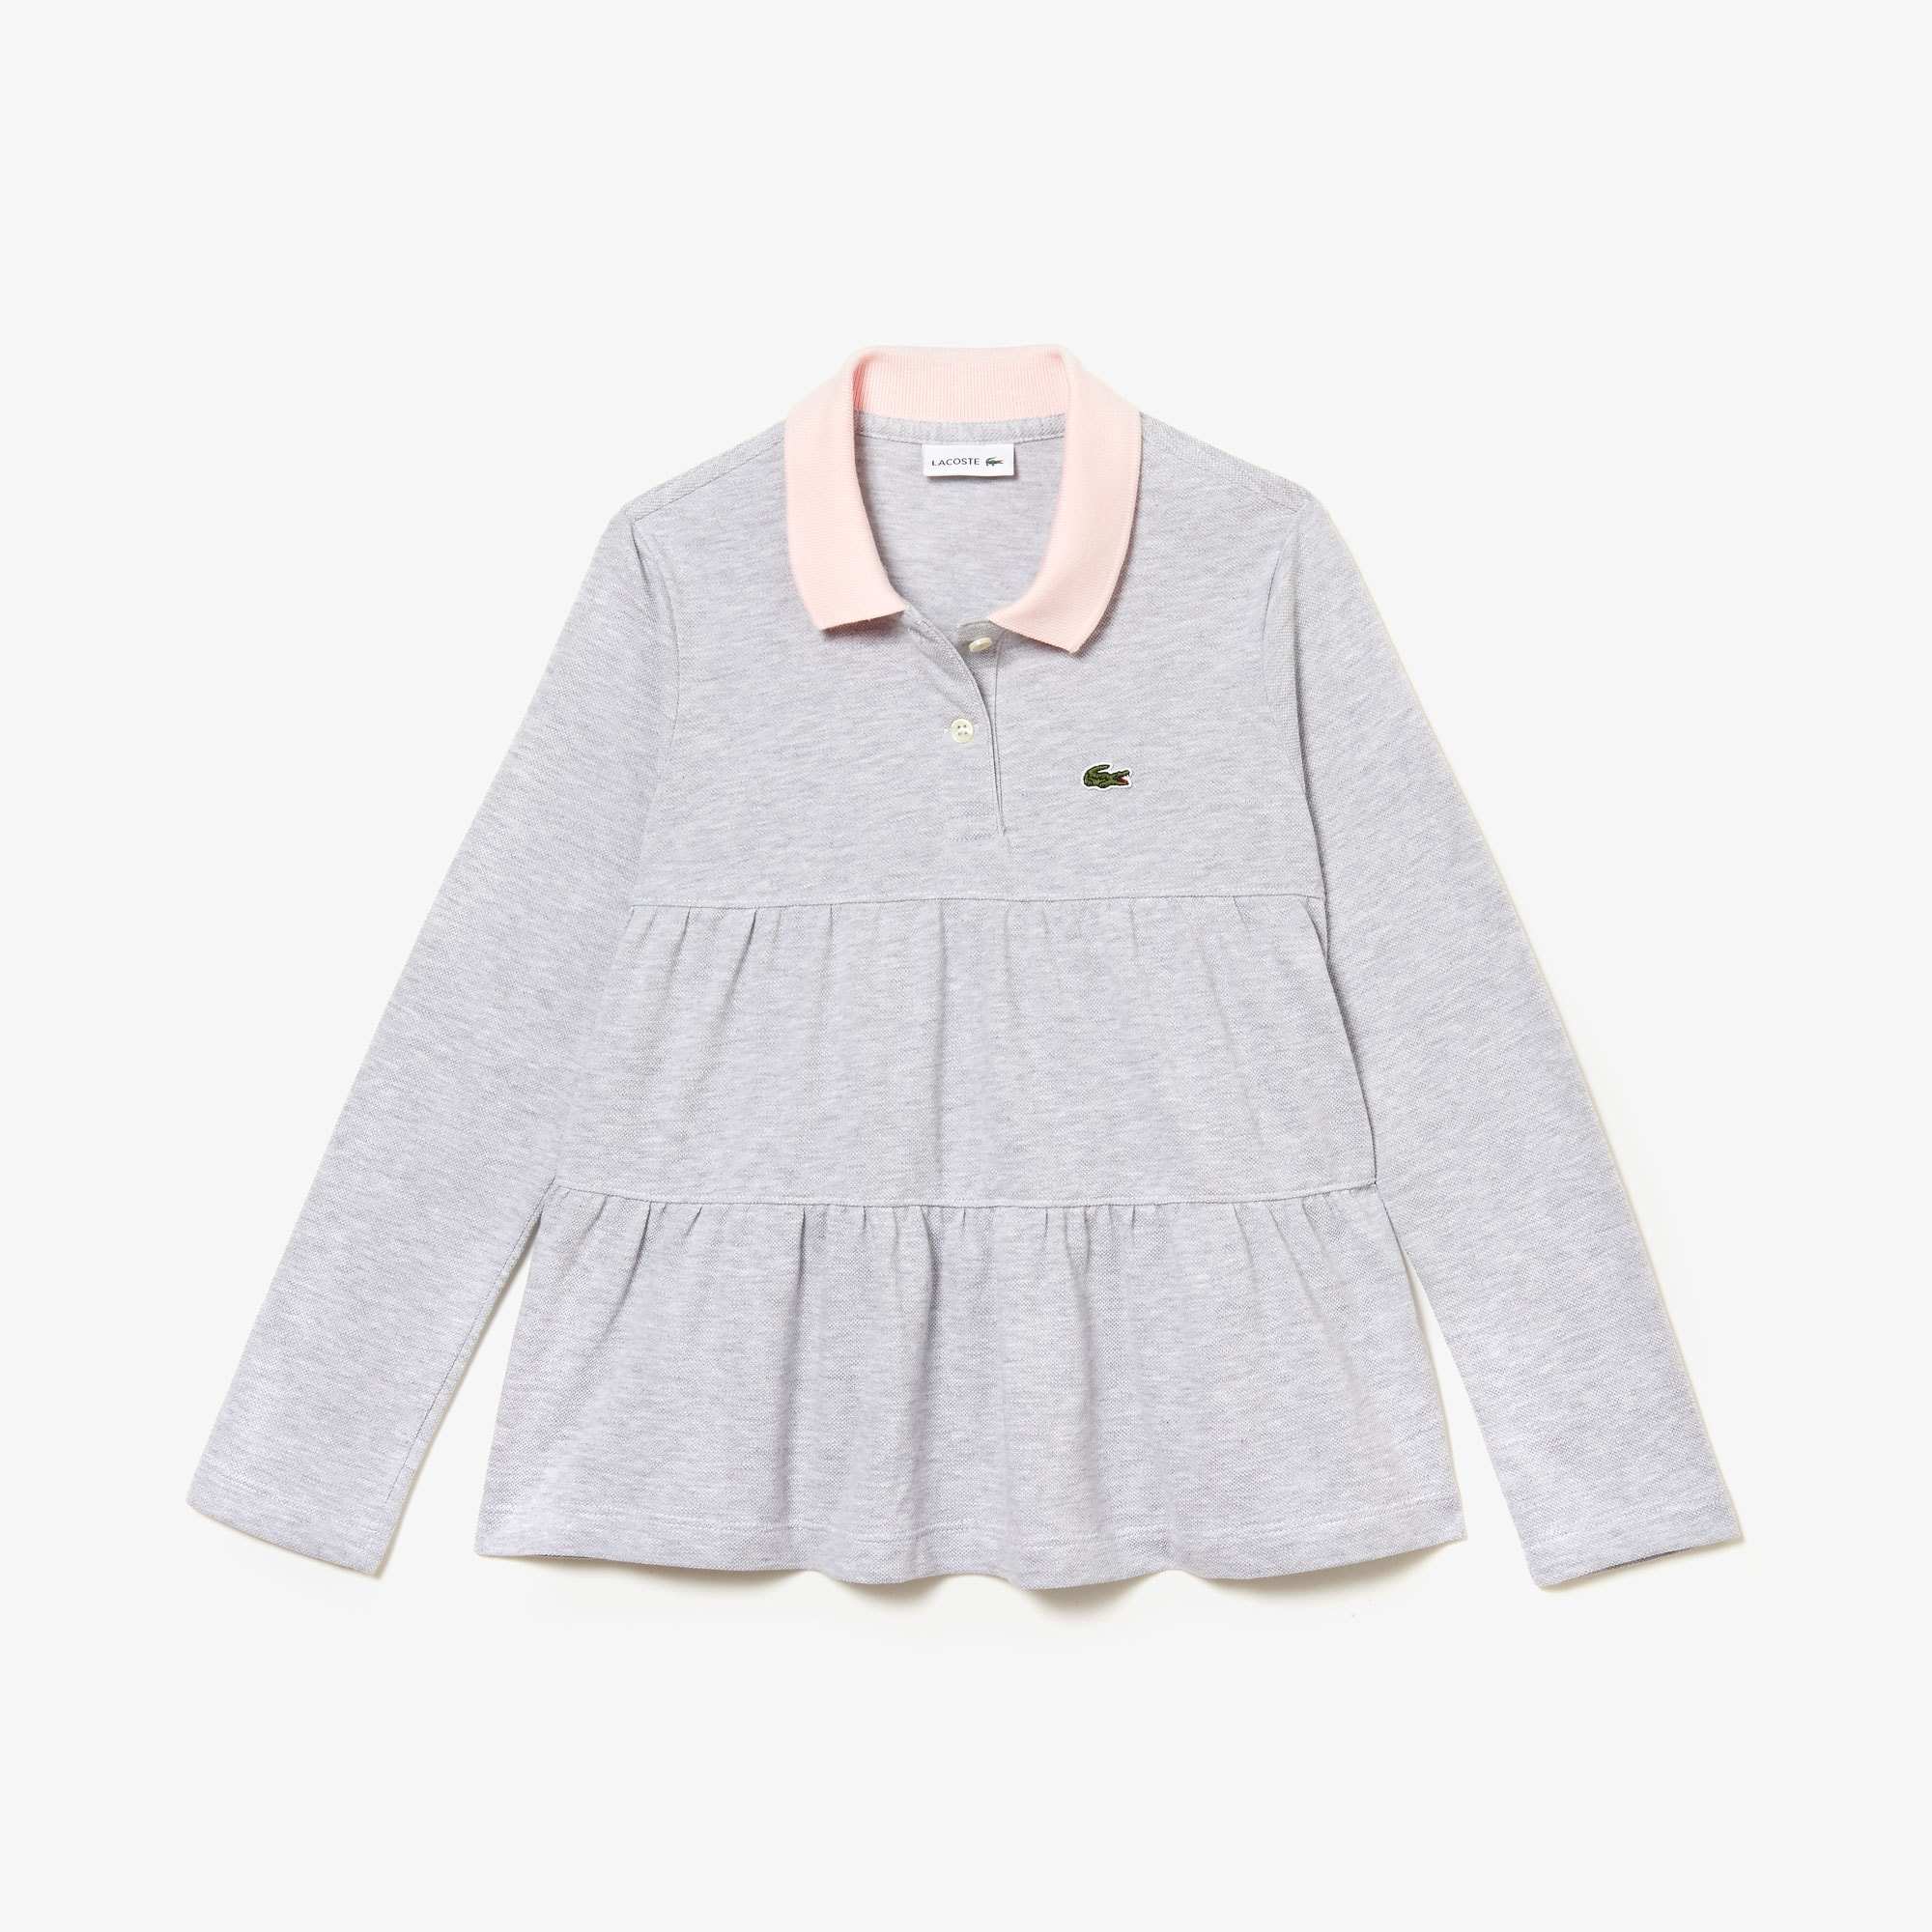 Girls' Lacoste Flounced Cotton Piqué Polo Shirt